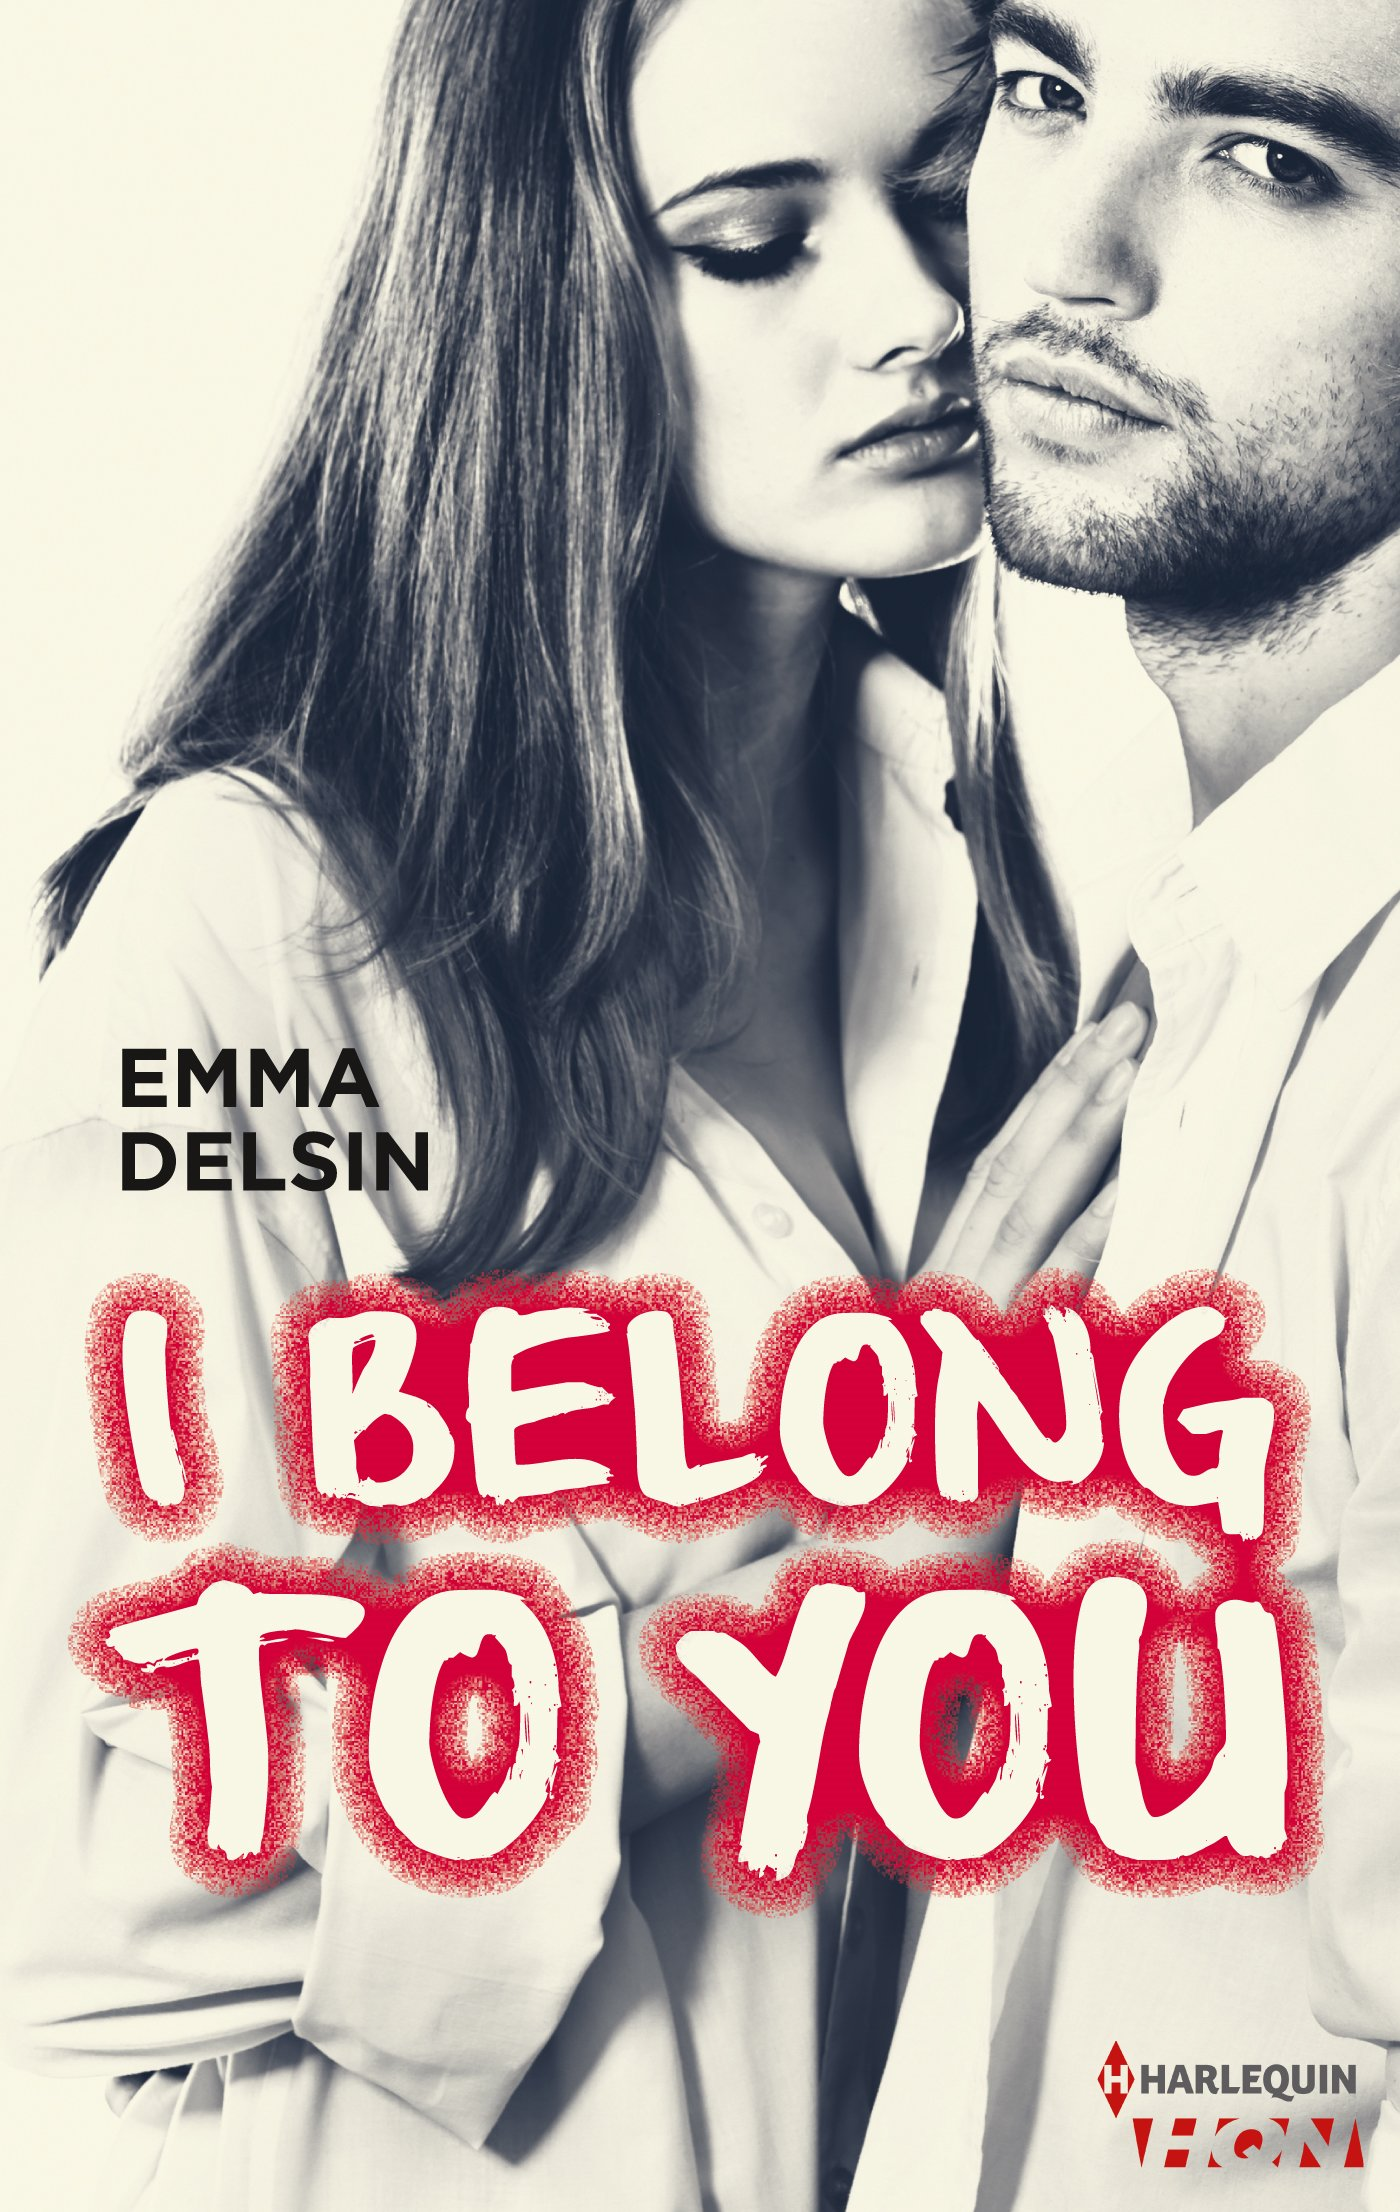 Couverture : EMMA DELSIN, I BELONG TO YOU, Harlequin HQN